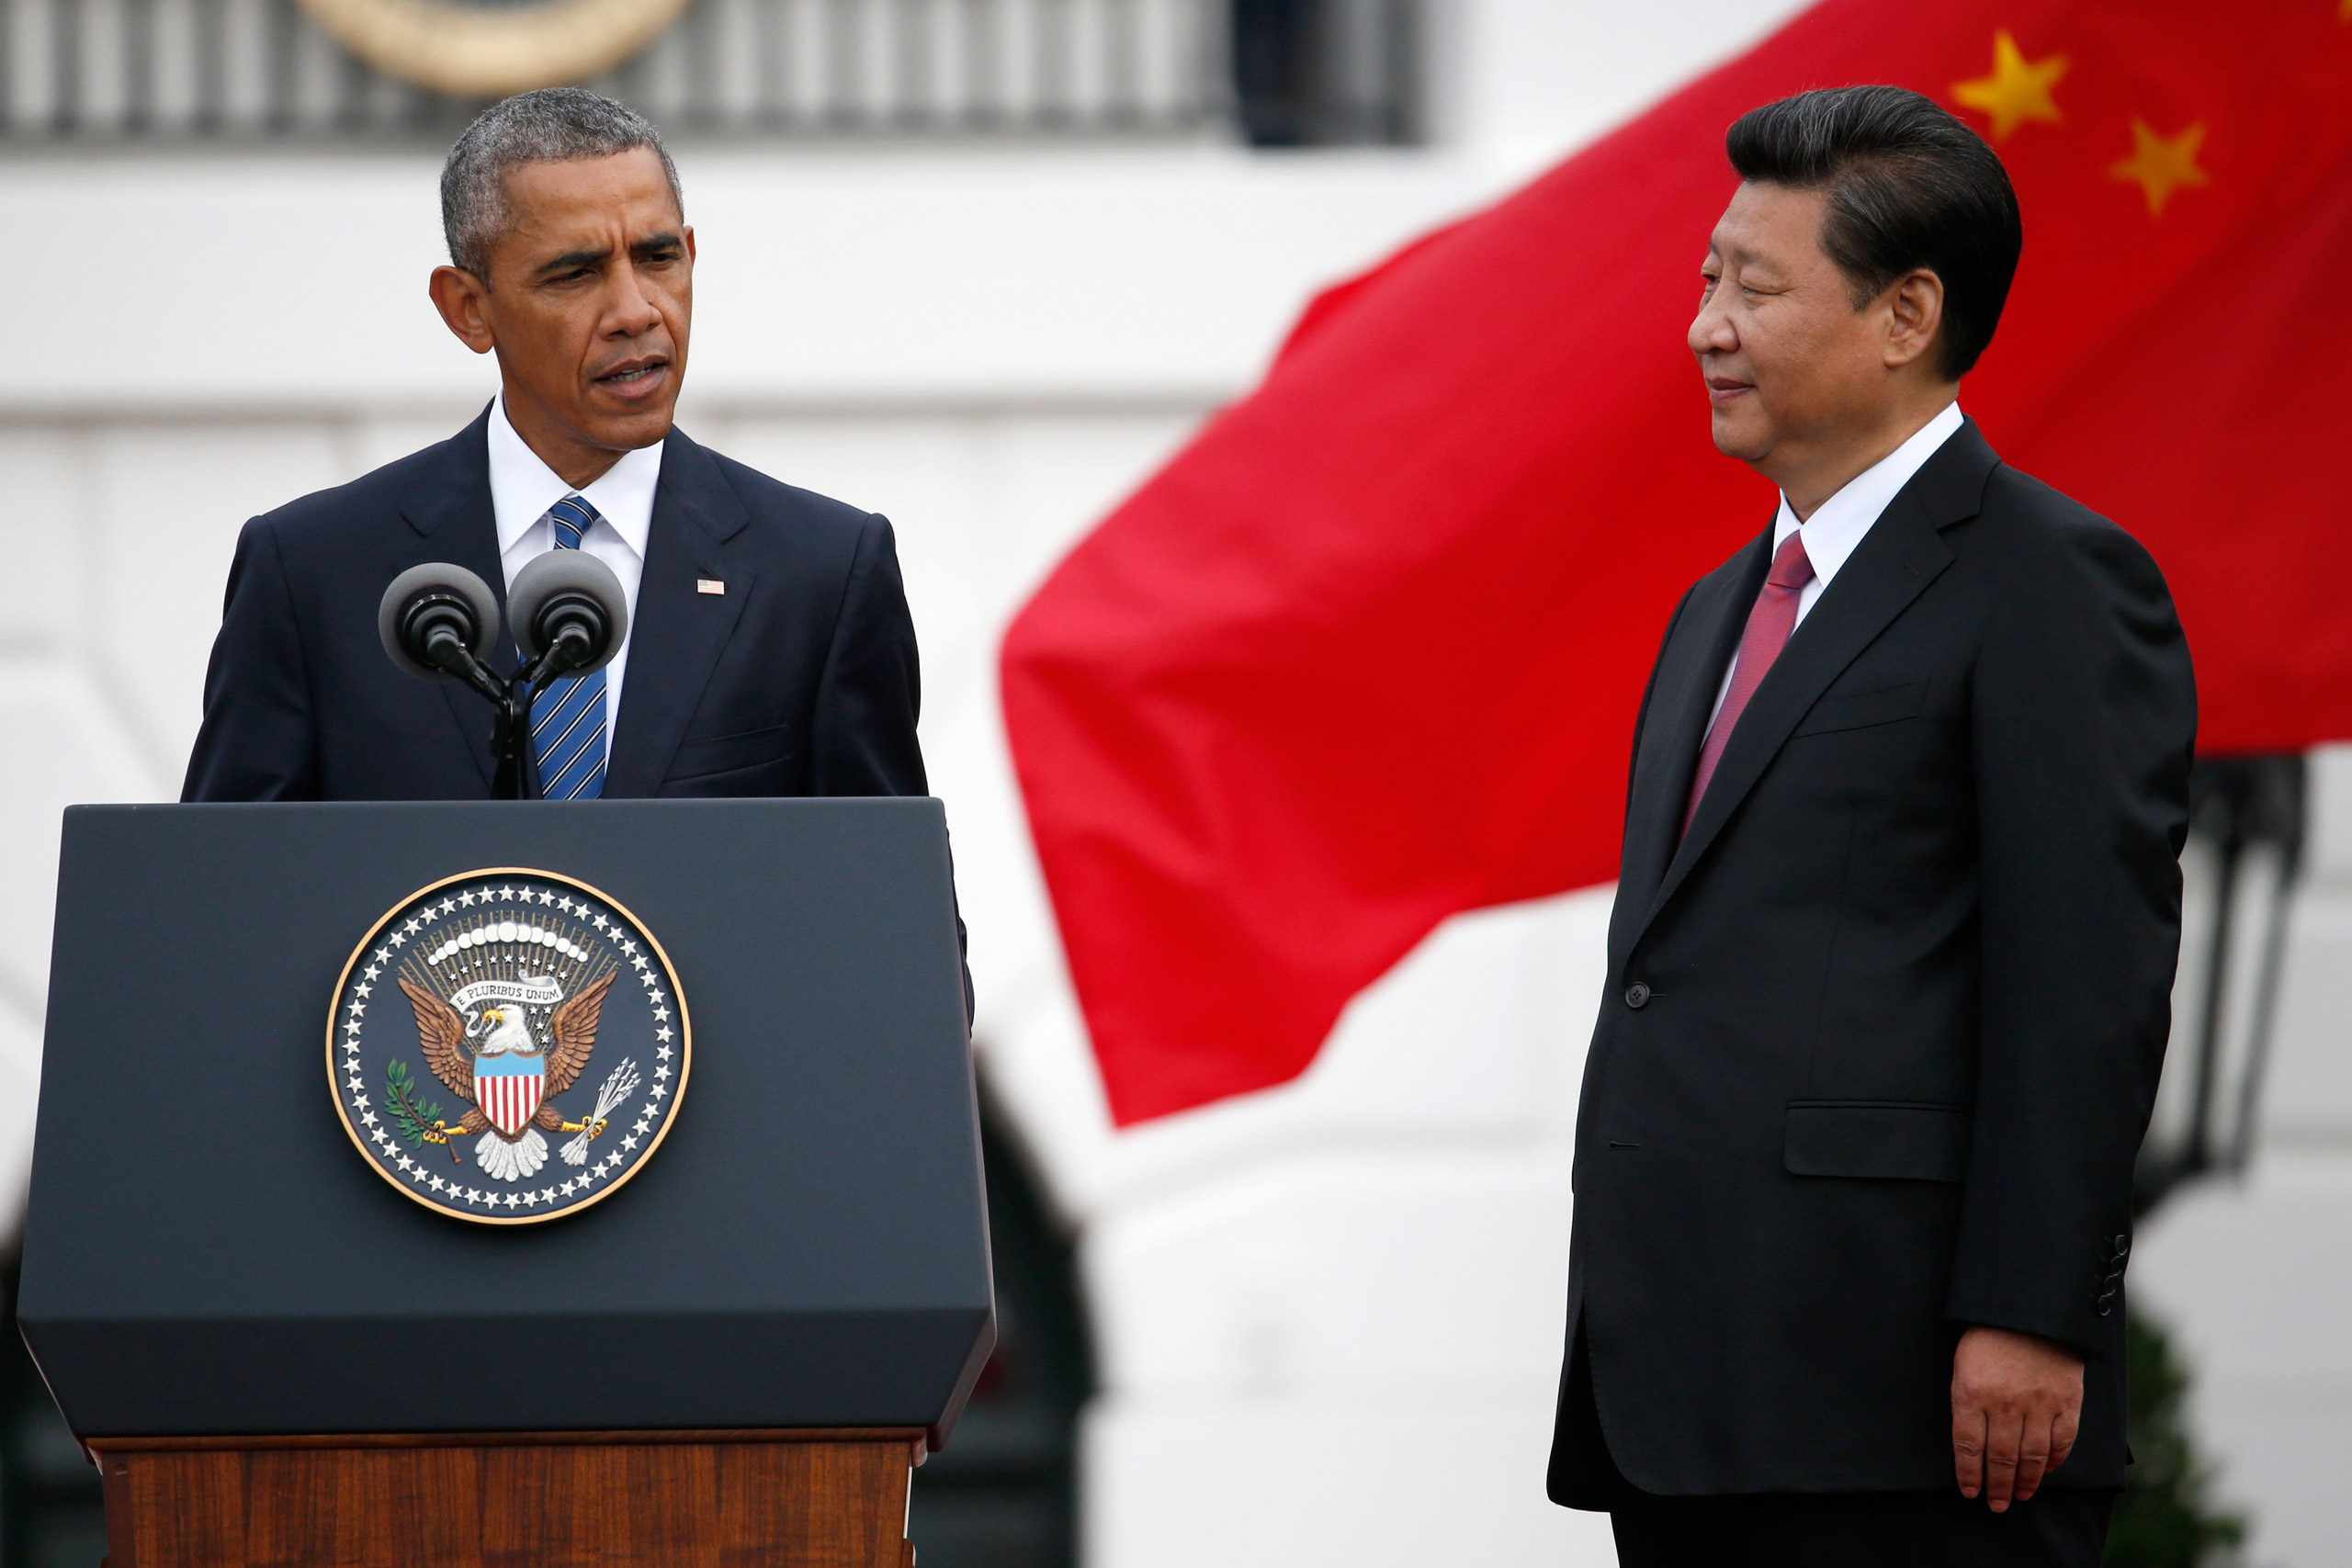 Chinese President Xi Jinping listens as President Barack Obama speaks during an official state arrival ceremony for the Chinese president at the White House in Washington on Sept. 25, 2015.